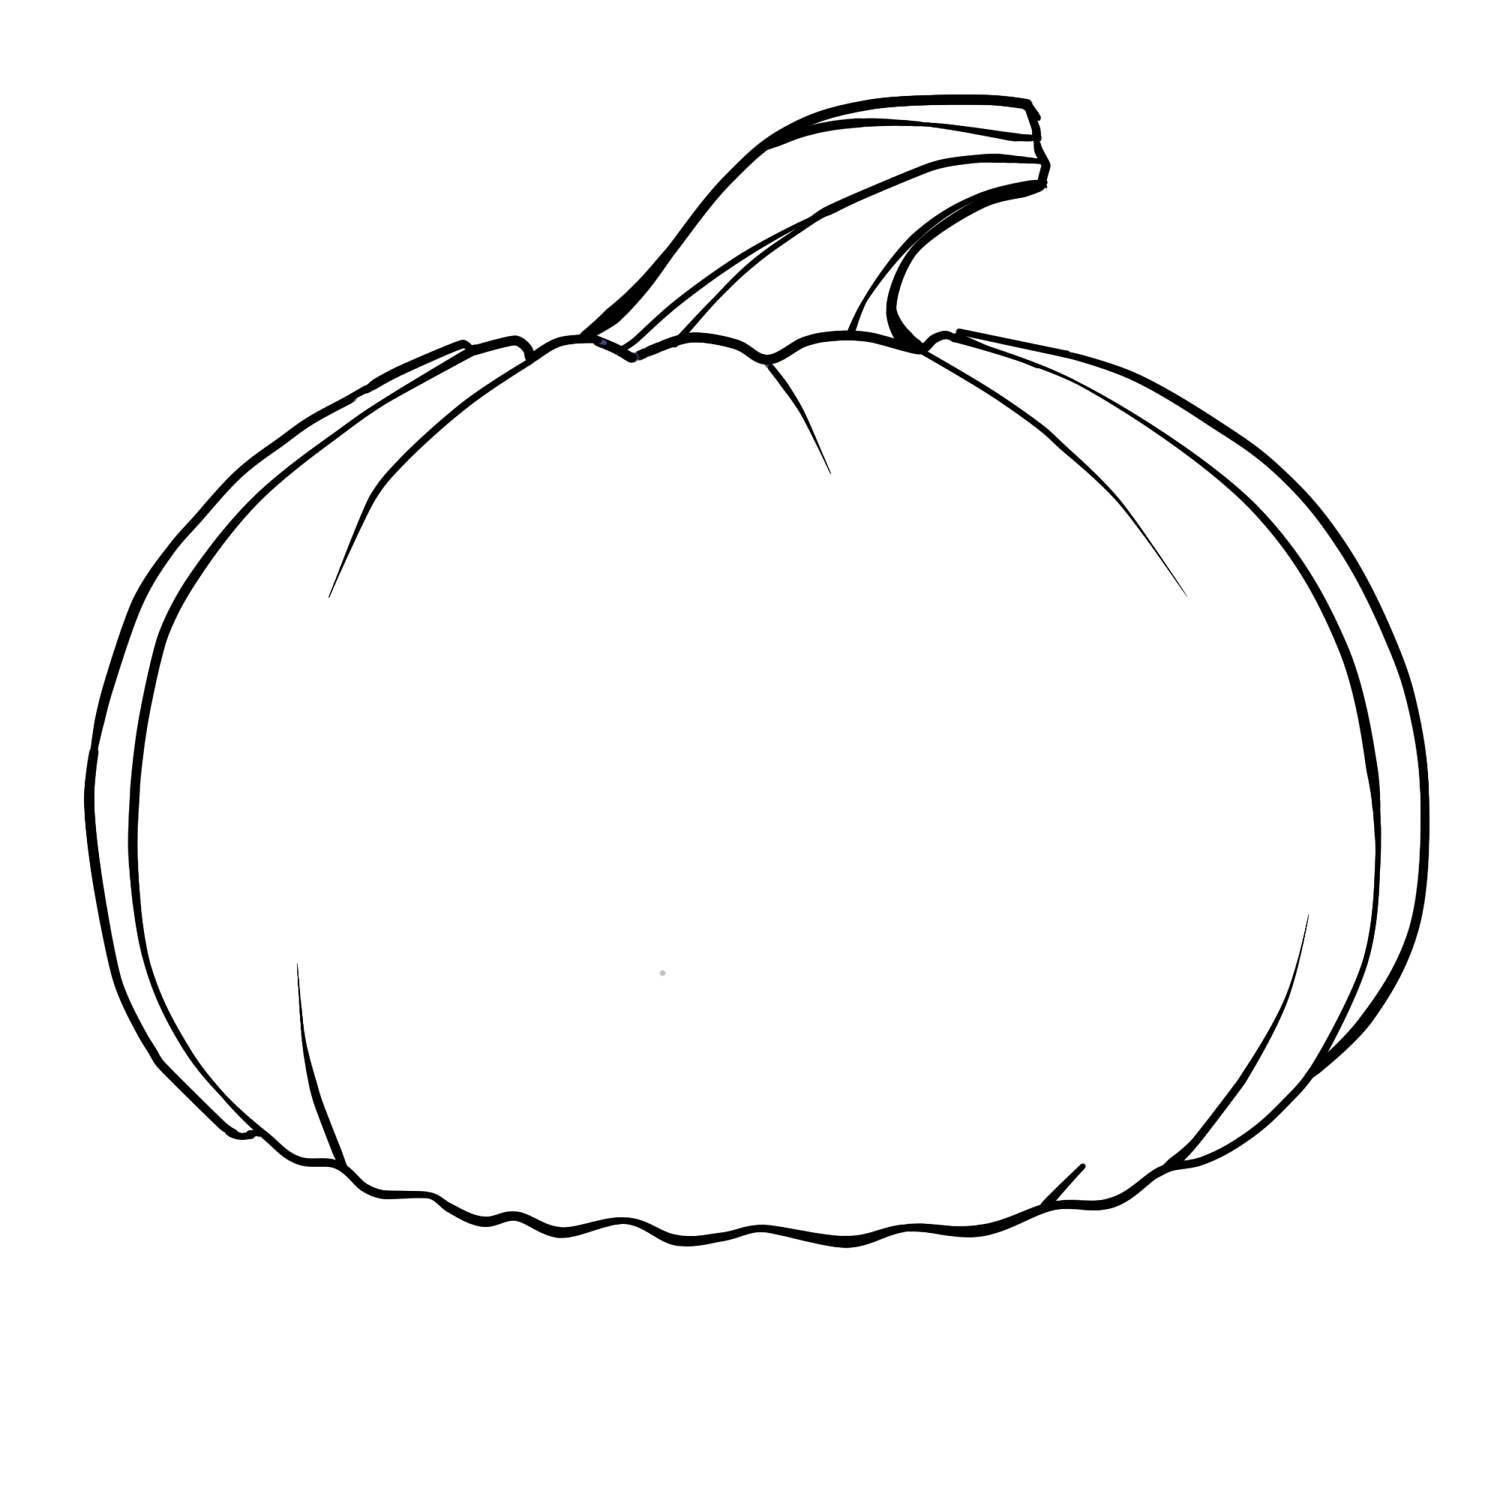 free pumpkin stencils to print and cut out free pumpkin stencils